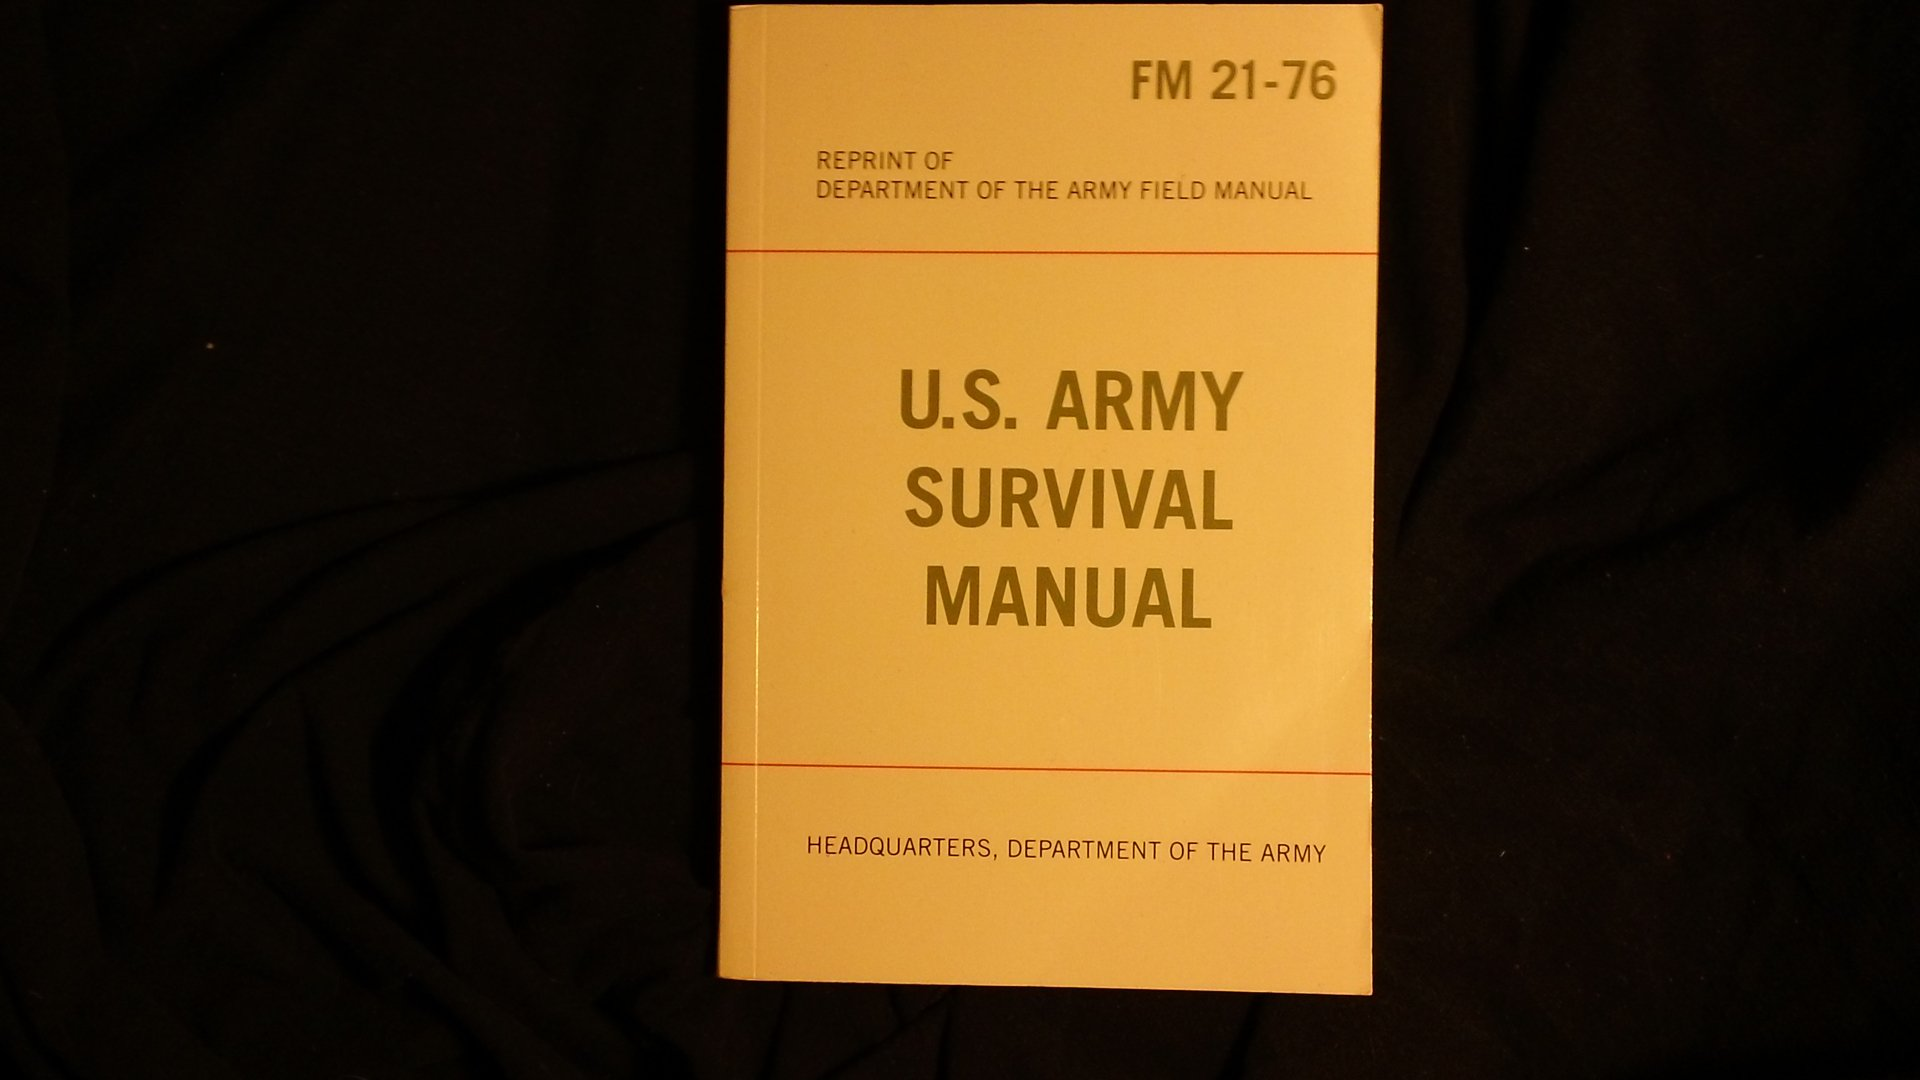 U.S. Army Survival Manual (FM 21-76)